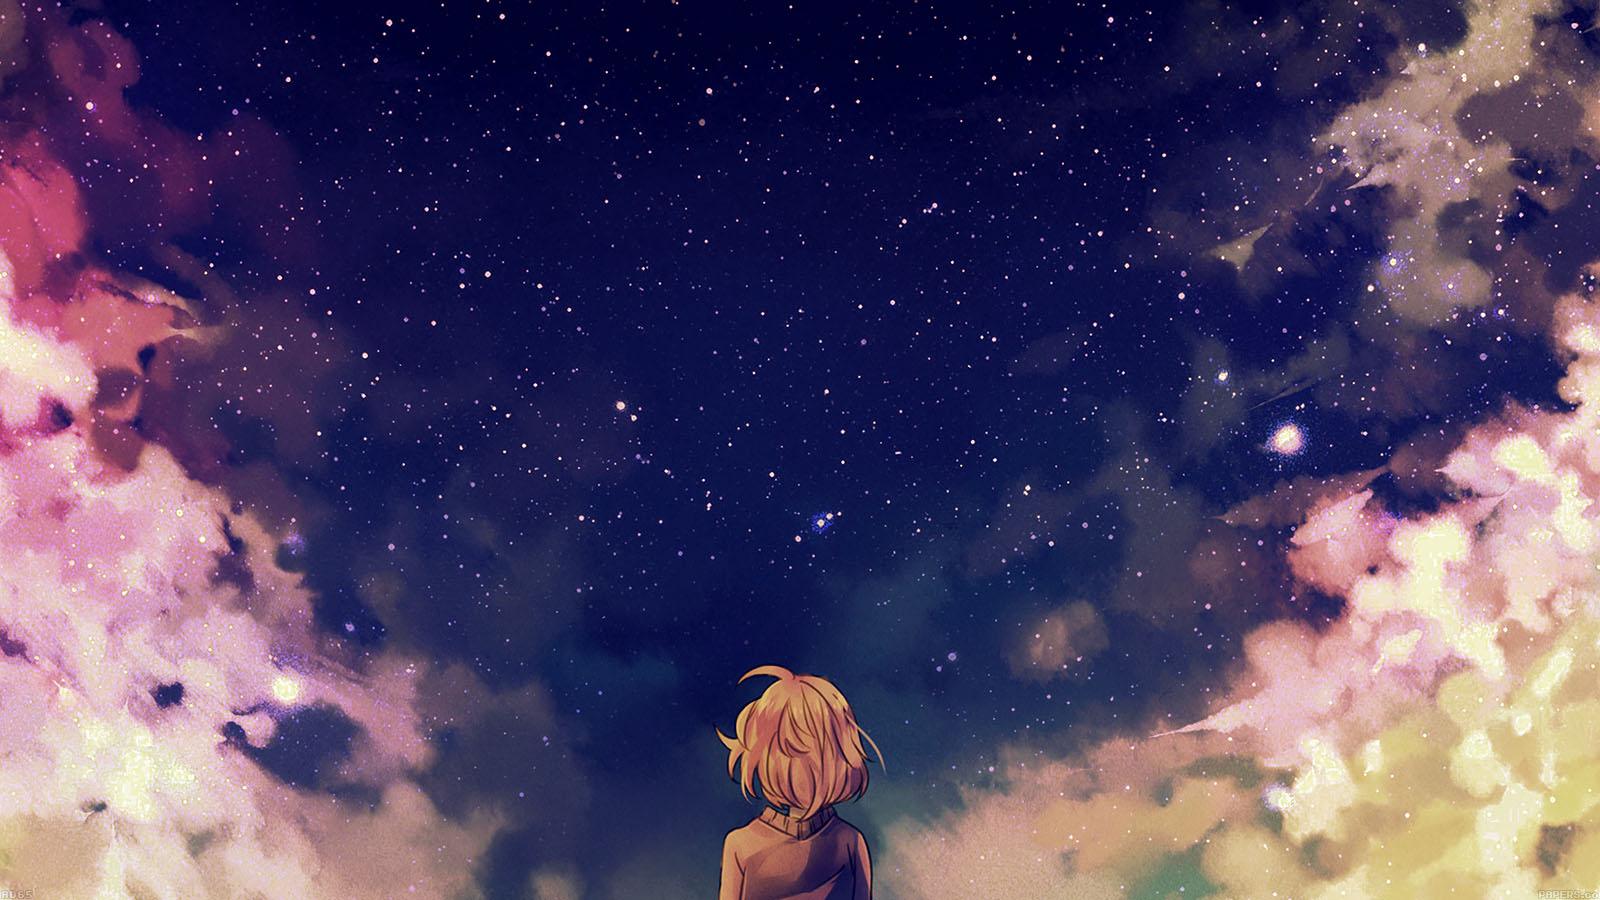 Fall Landscape Computer Wallpaper Ad65 Starry Space Illust Anime Girl Wallpaper